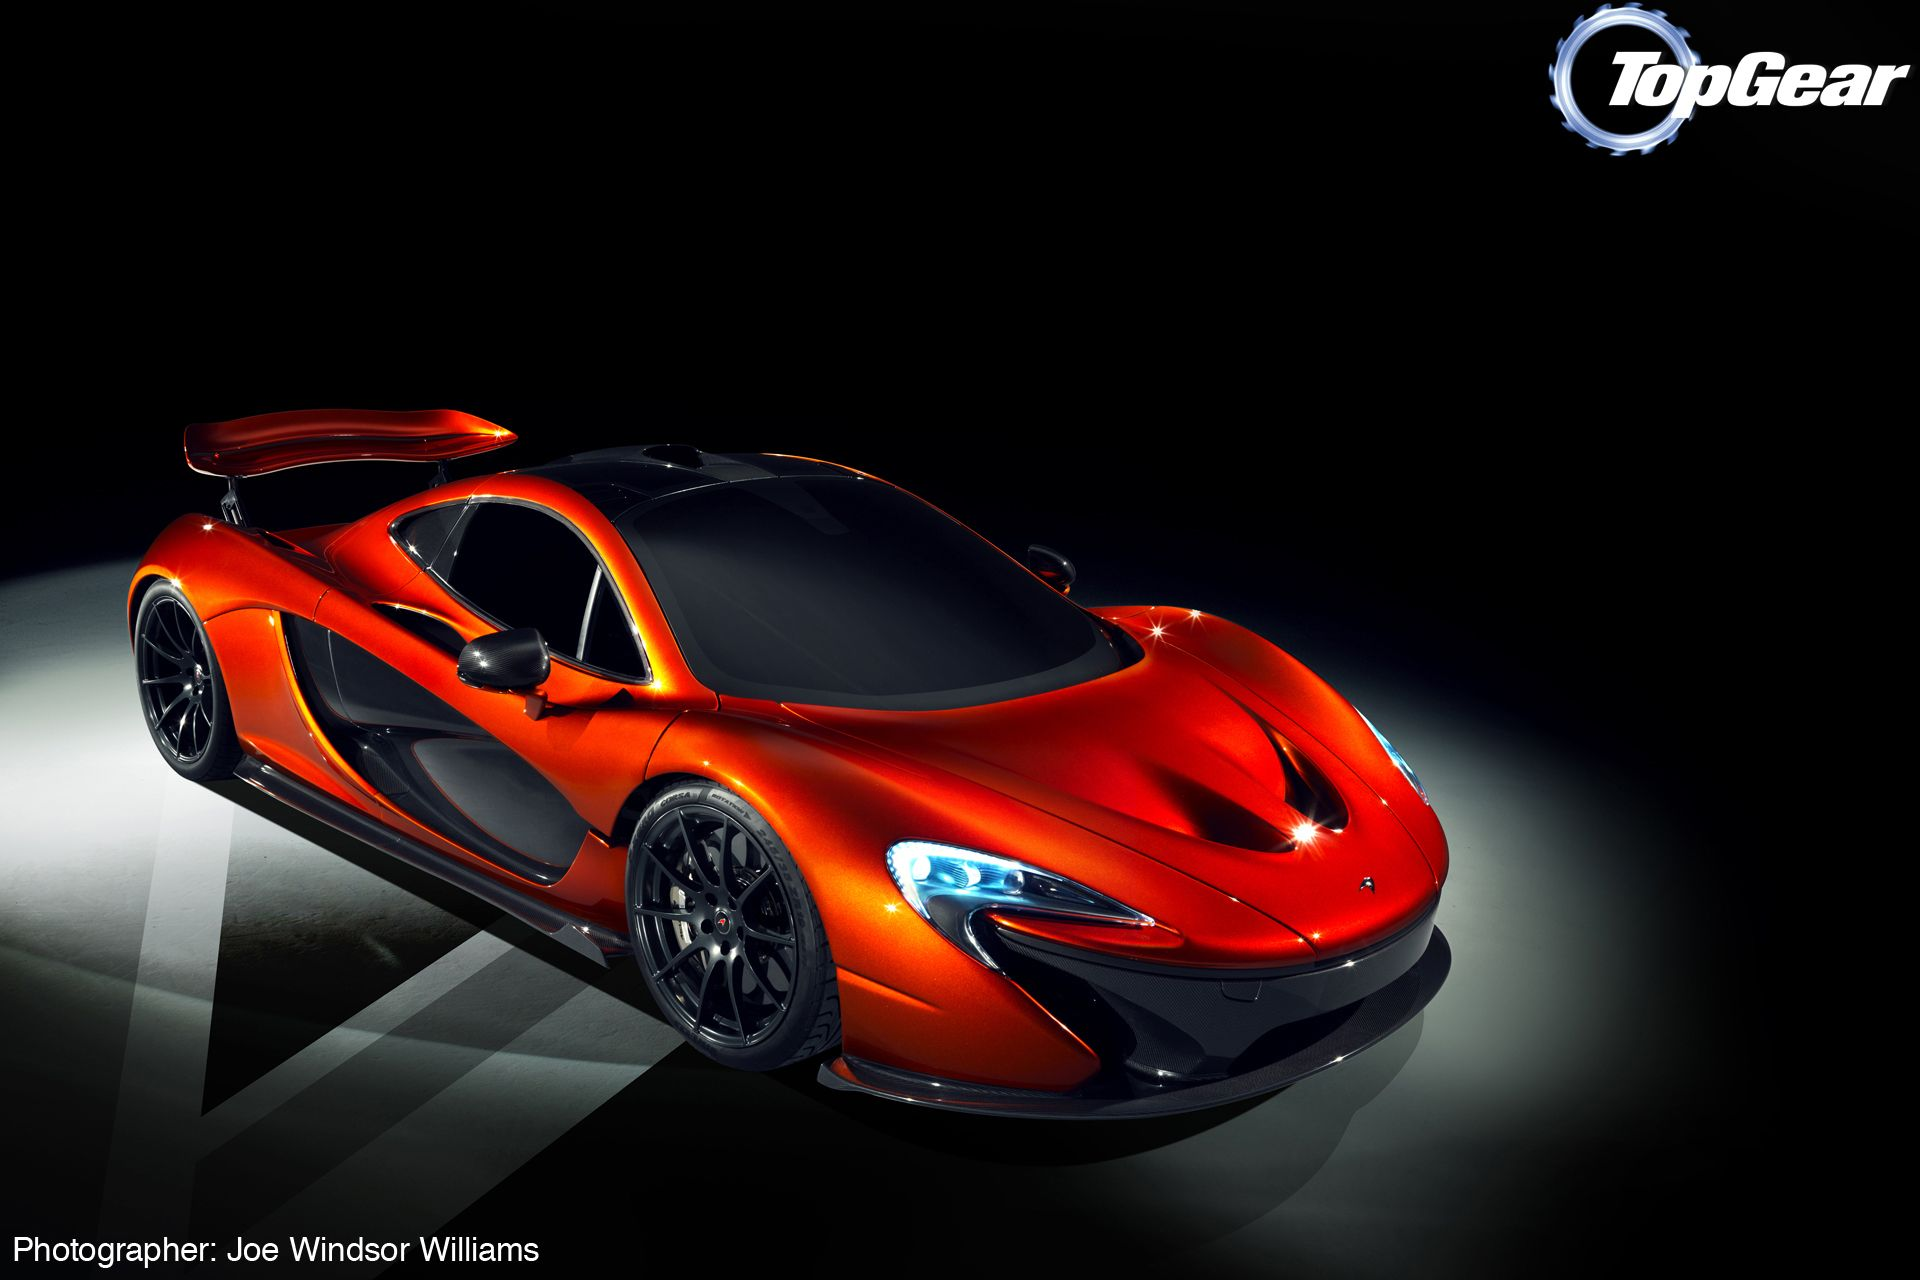 This Week S Wallpapers Mclaren P1 Hi Res Wallpapers From Our Exclusive Shoot With The Awesome Mclaren P1 Photographe Sports Car Super Cars Mclaren P1